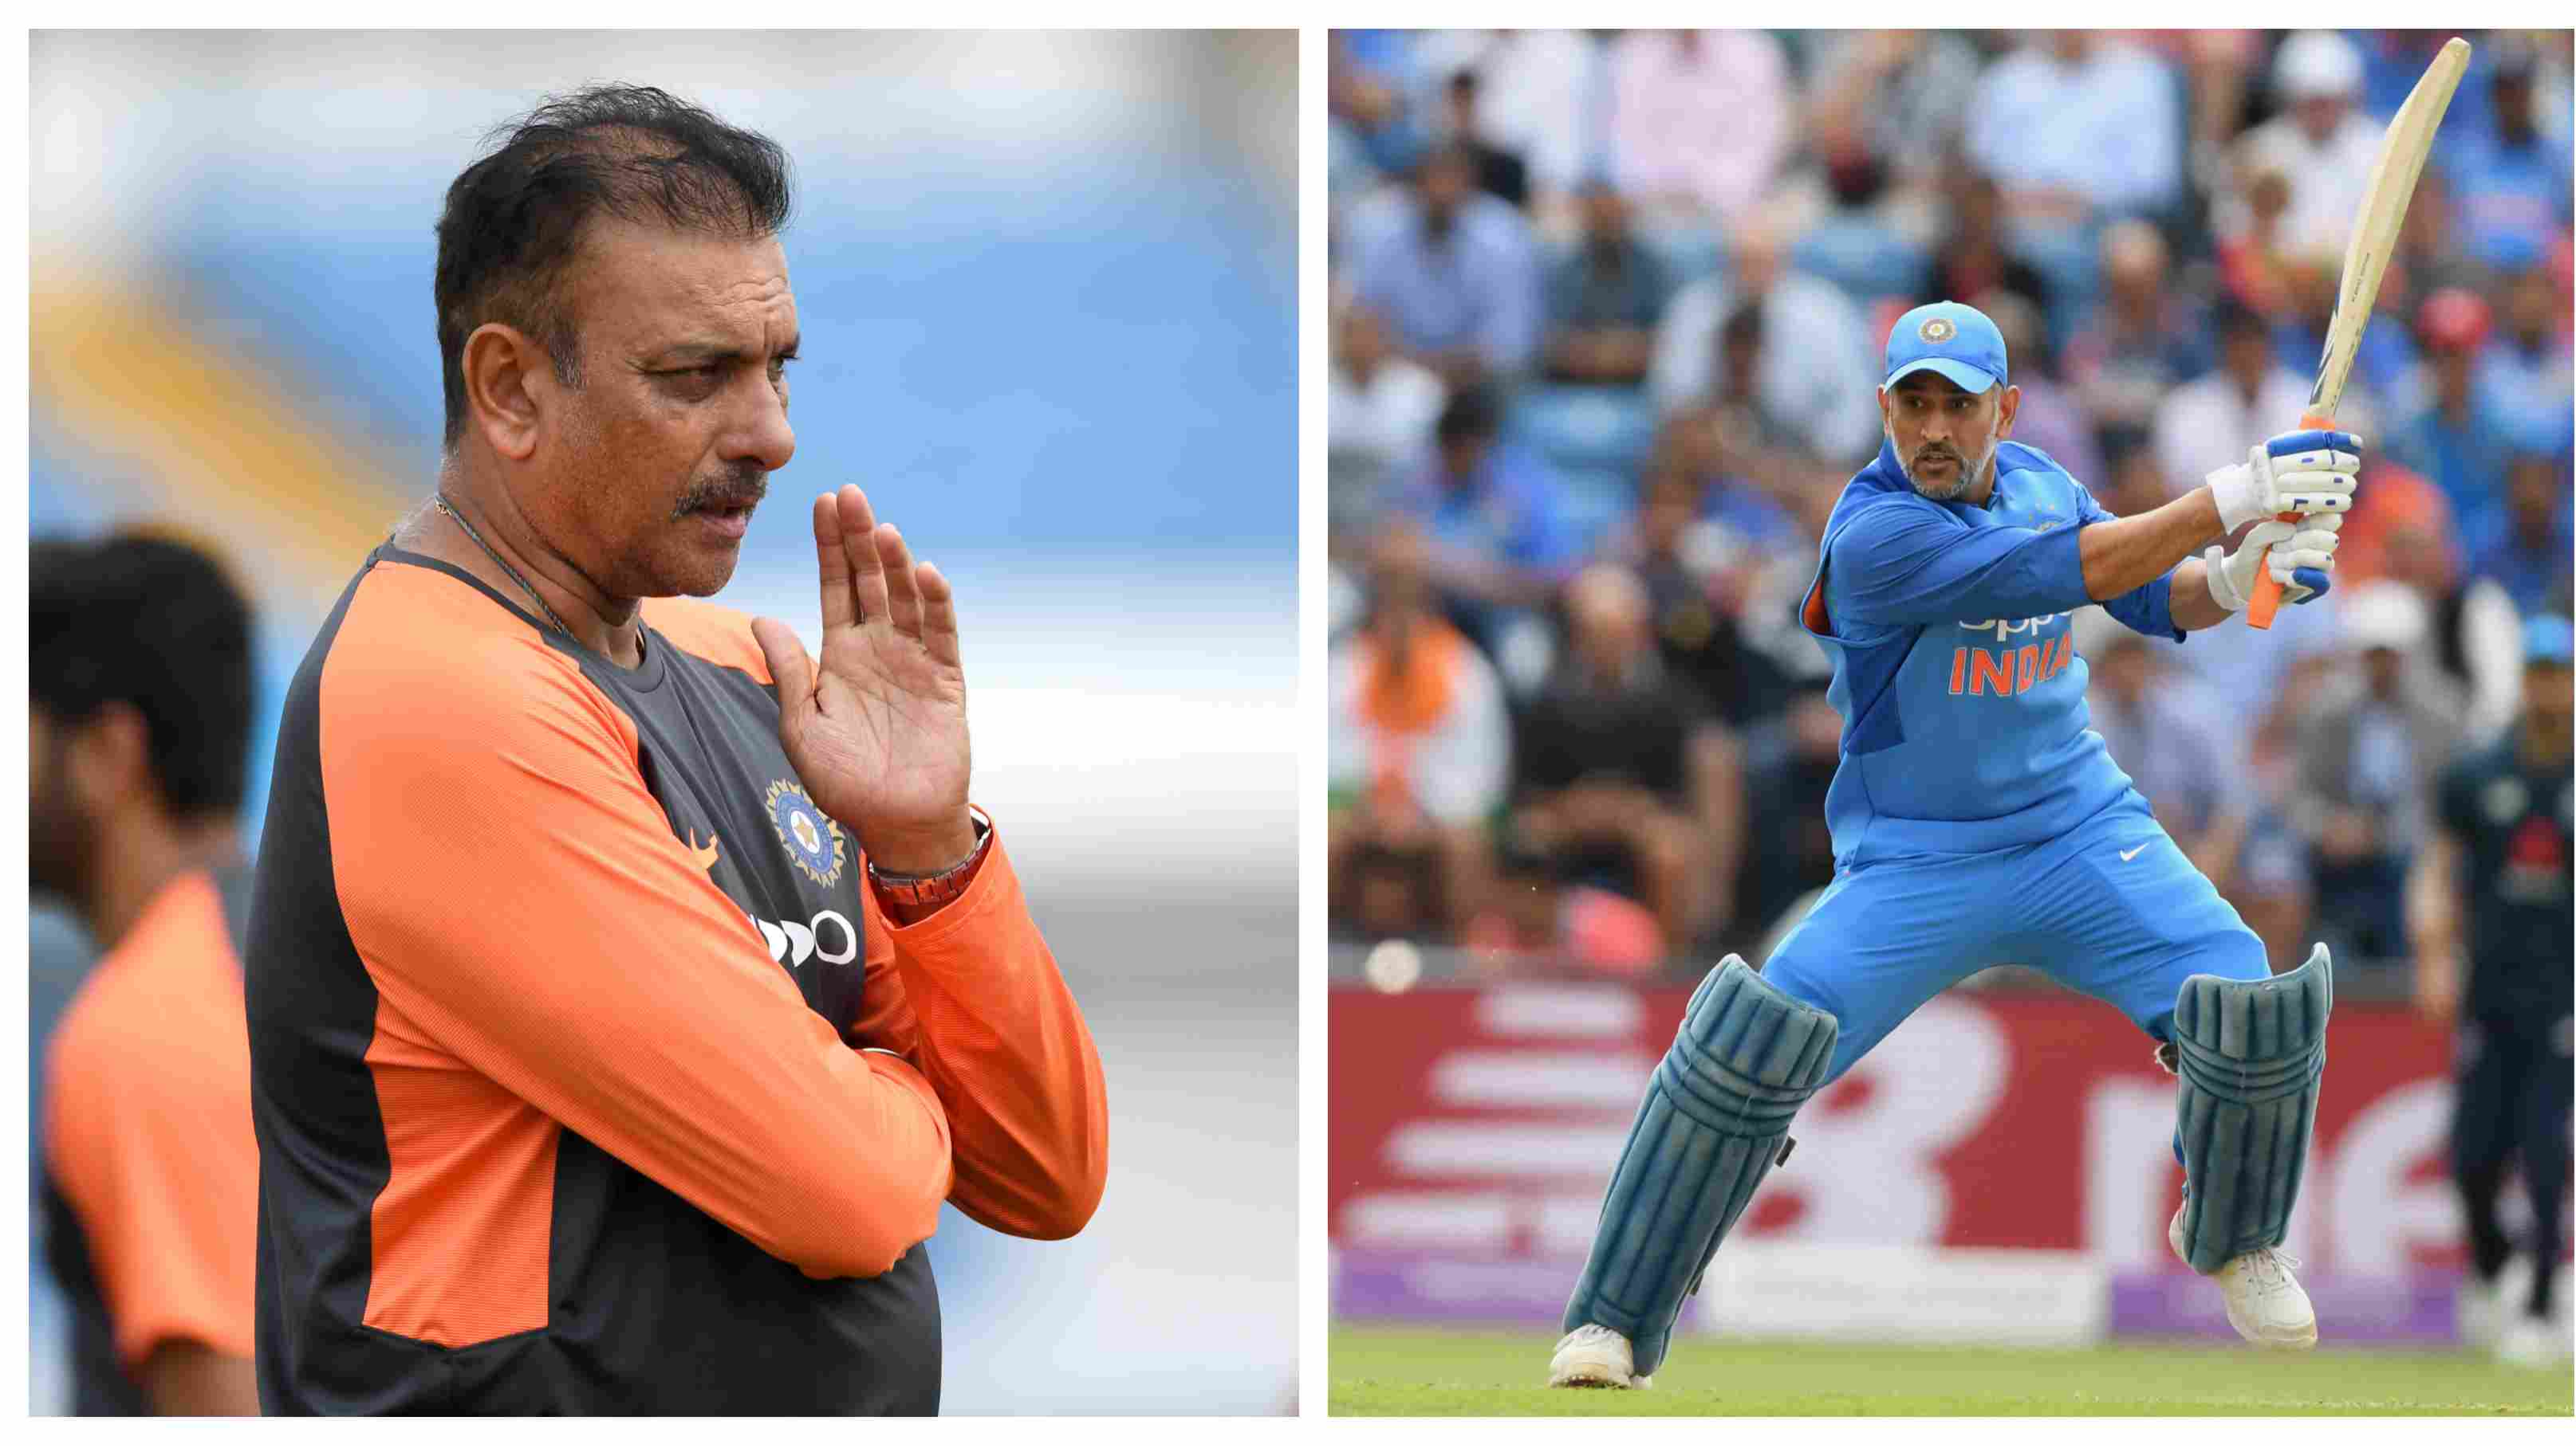 ENG v IND 2018: Ravi Shastri clears the air regarding MS Dhoni's retirement